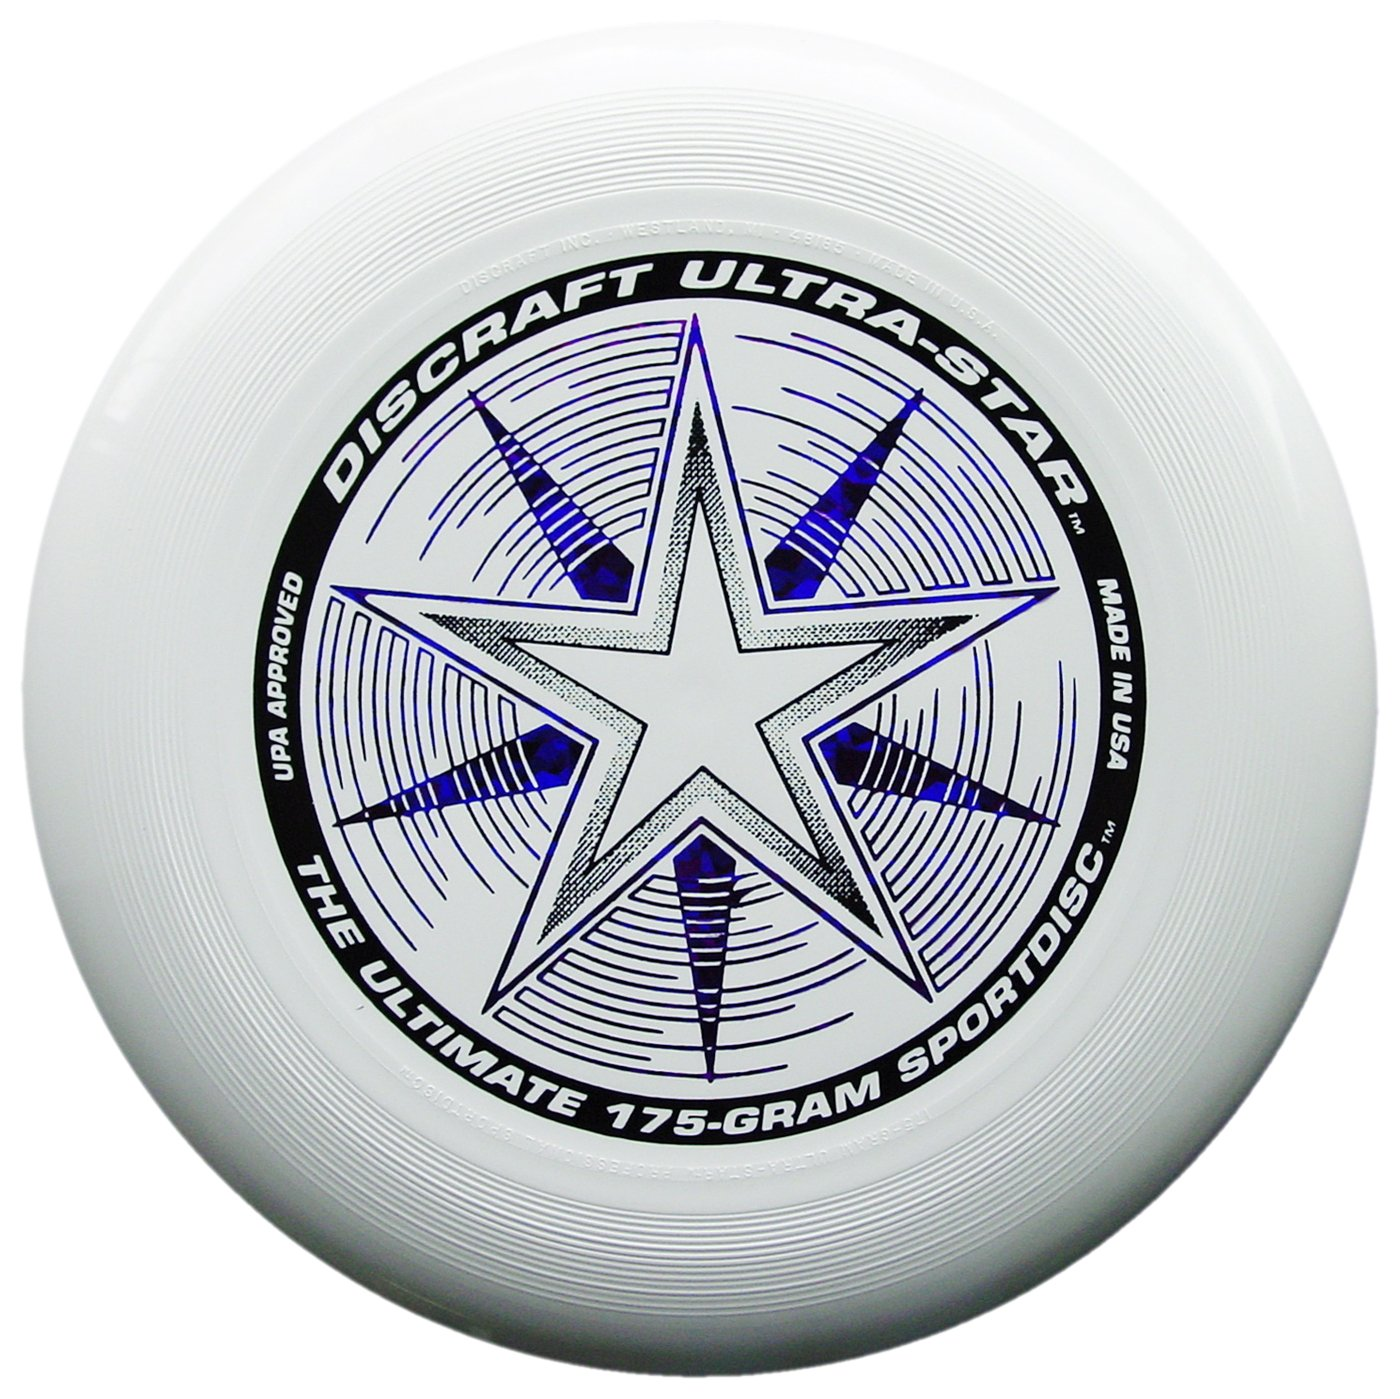 Discraft 175 gram Ultra Star Sport Disc, White with Deluxe Packaging by Discraft